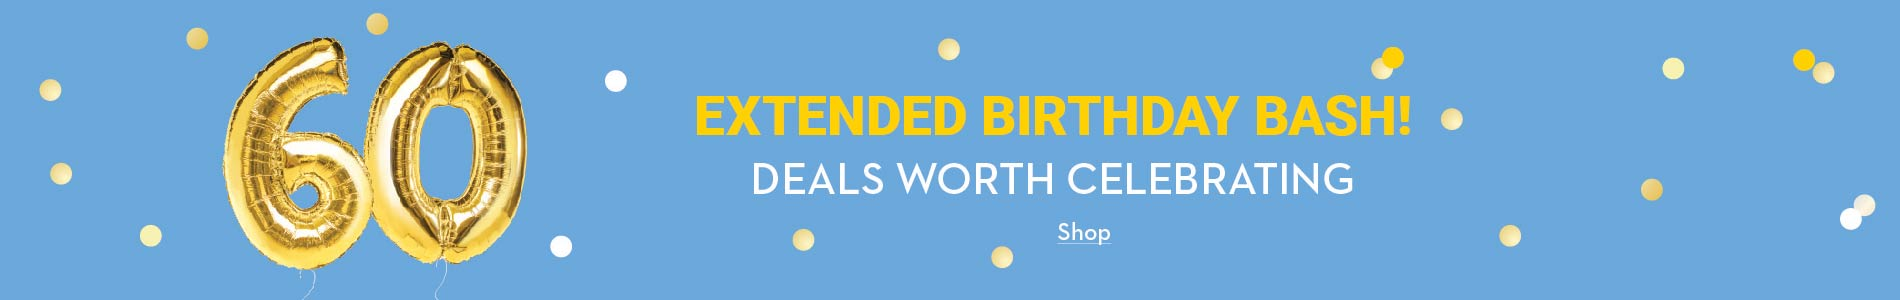 Extended birthday bash! Deals worth celebrating